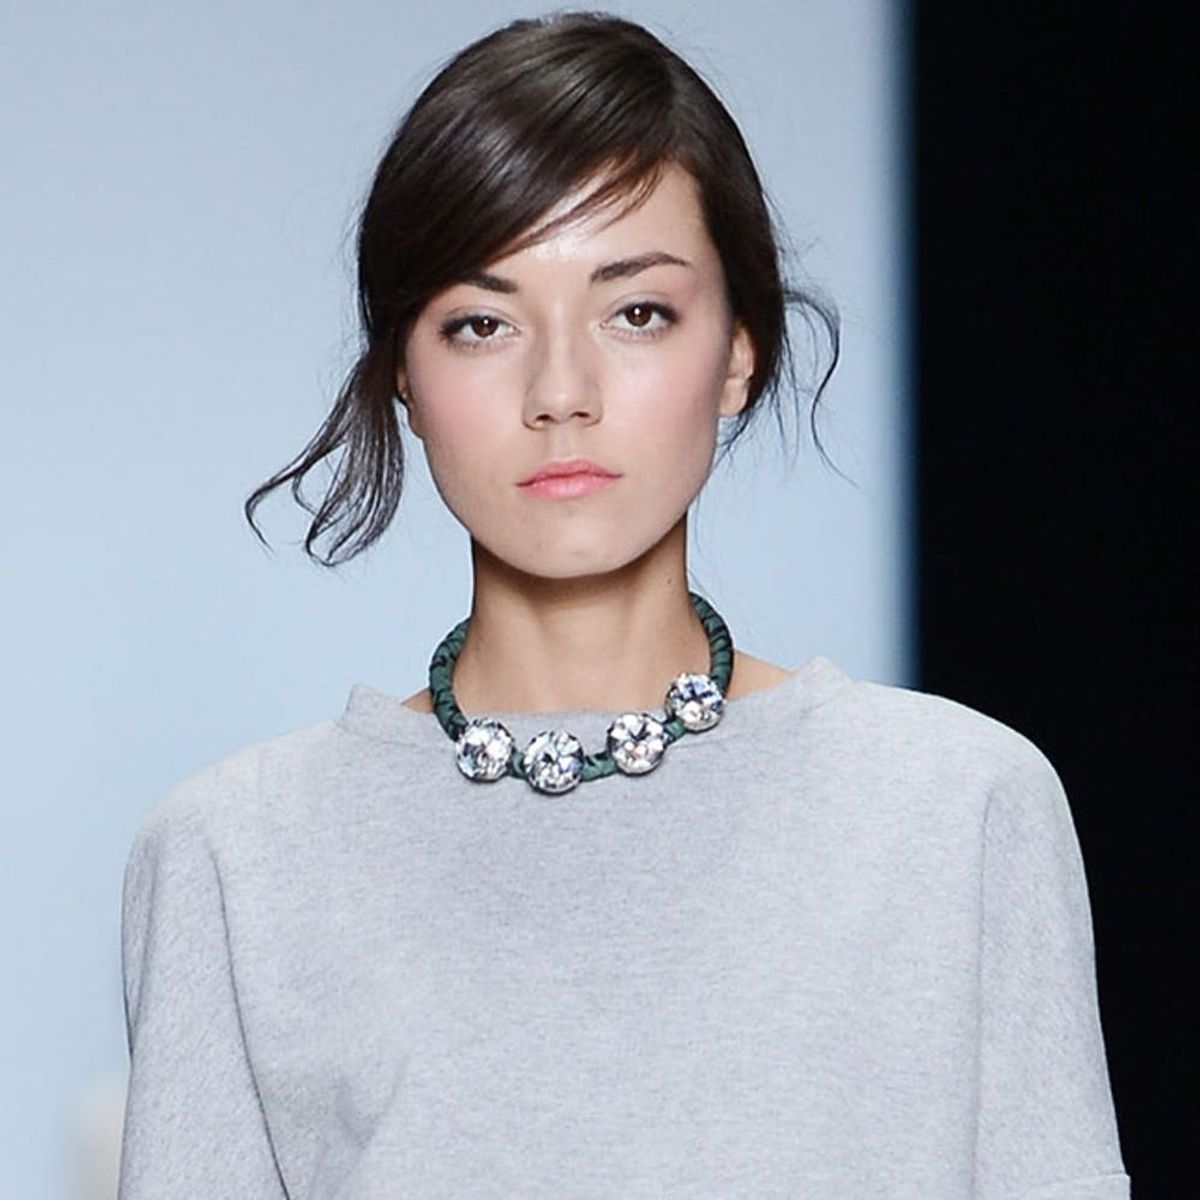 Necklace Type necklace jumper